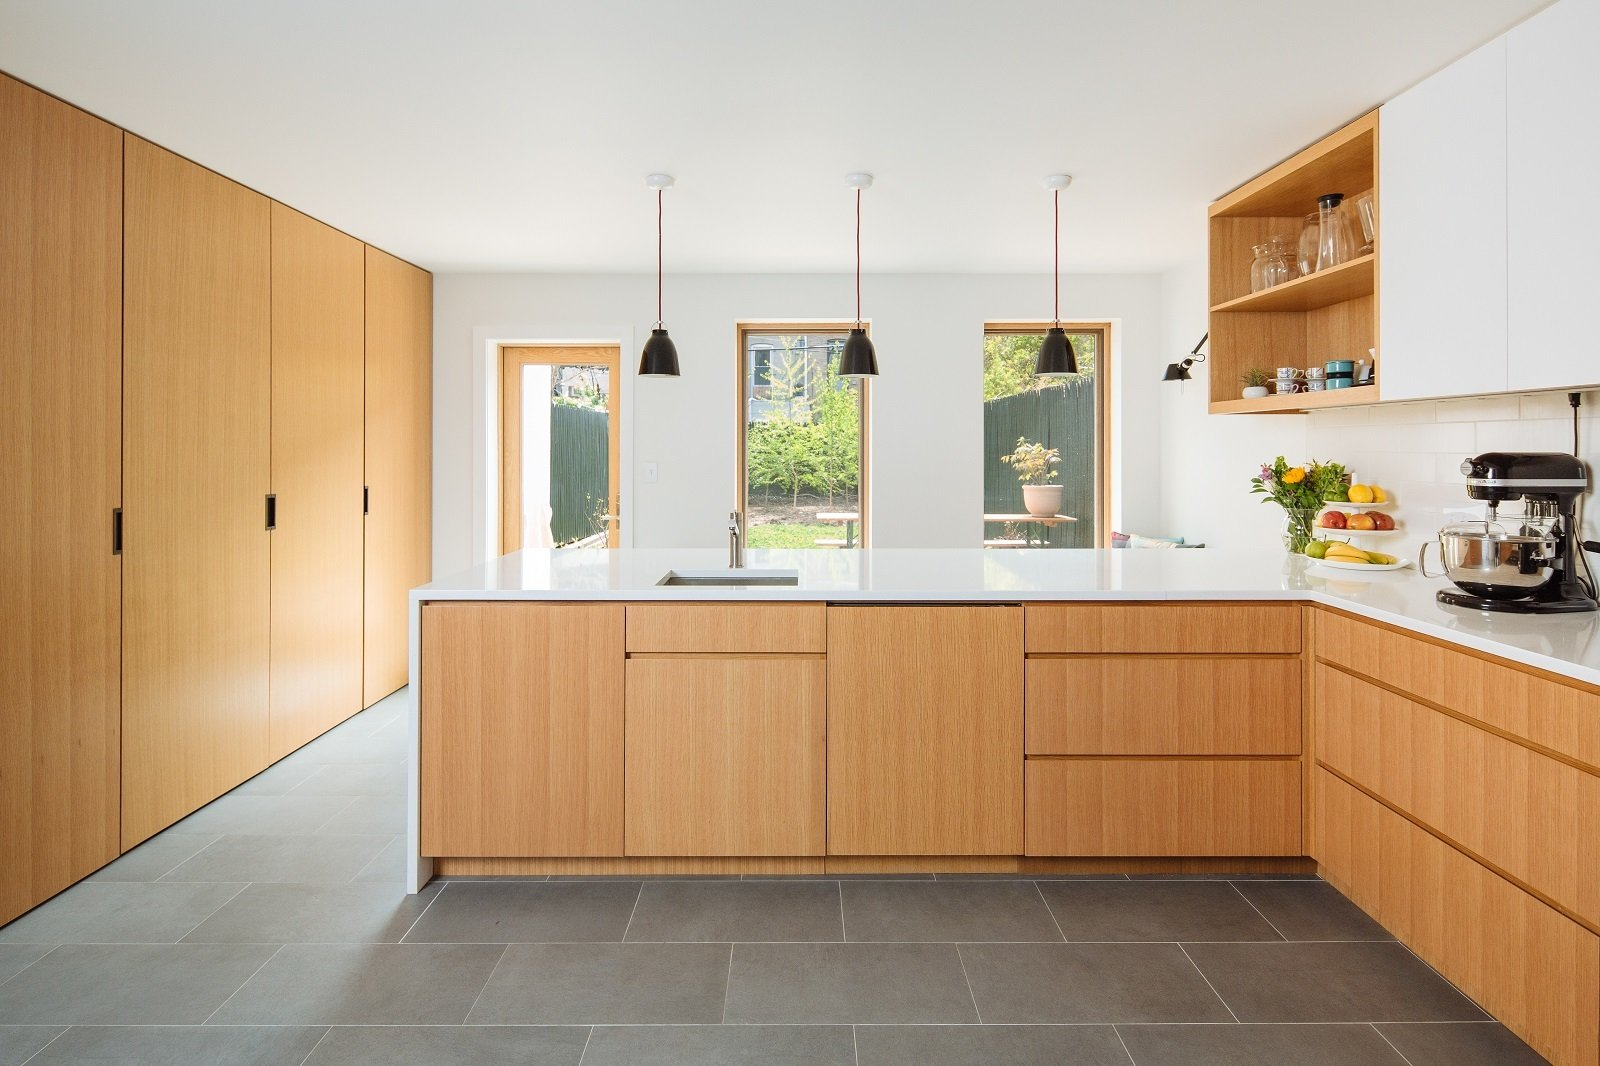 Custom white oak cabinetry provides a clean interior  Tagged: Kitchen, White Cabinet, Engineered Quartz Counter, Wood Cabinet, Subway Tile Backsplashe, Pendant Lighting, Porcelain Tile Floor, Accent Lighting, Dishwasher, and Undermount Sink.  Brooklyn Brownstone by Sonya Lee Architect llc